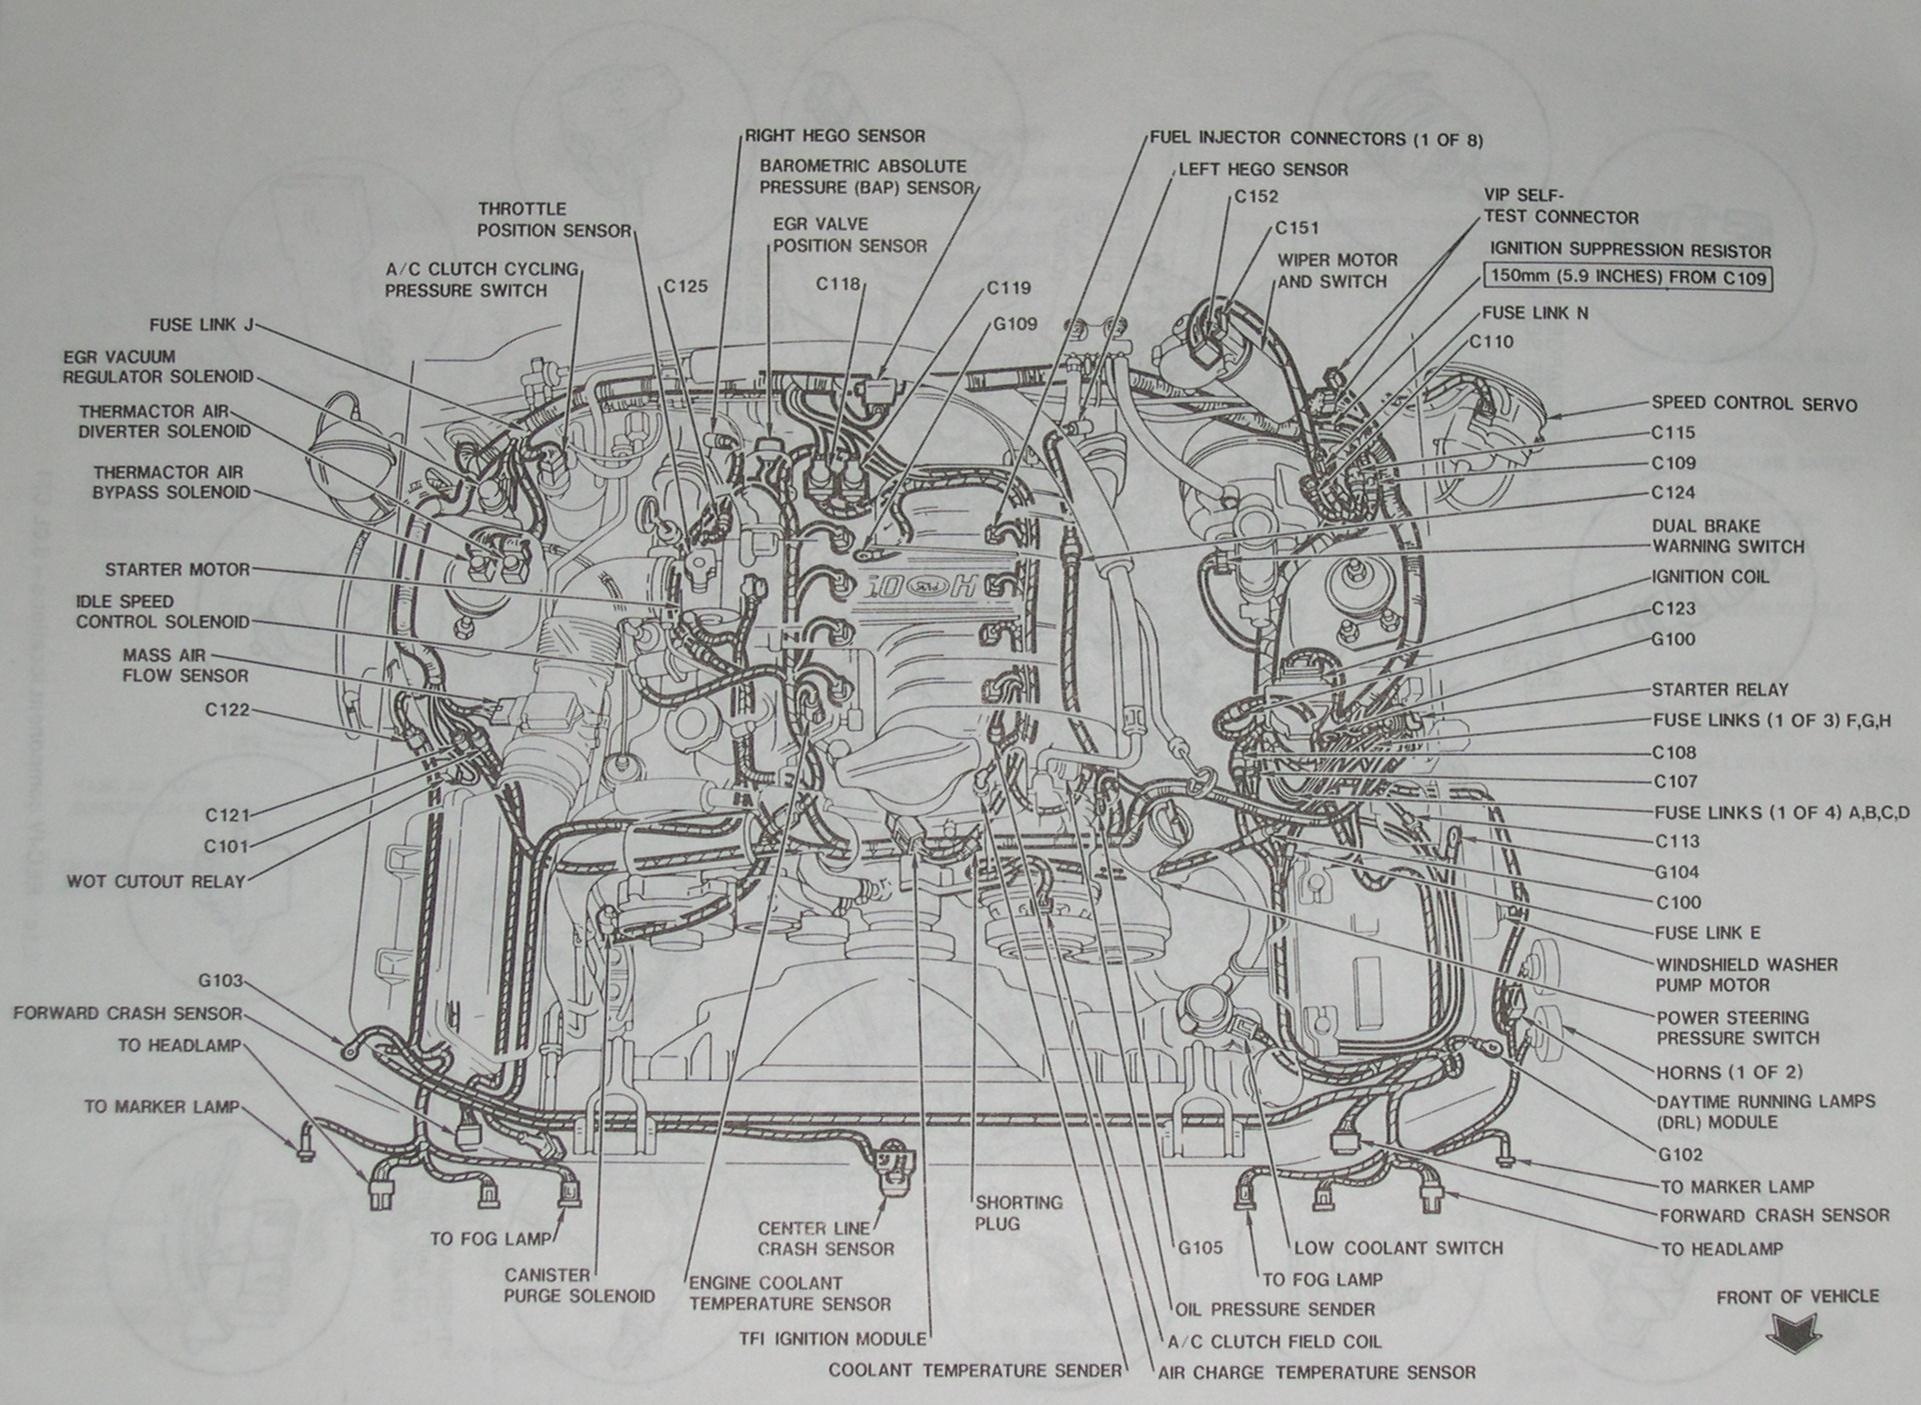 94 95 mustang 5 0 detailed mustang engine layout rh diagrams hissind com 14 Mustang 06 Mustang Pony Package